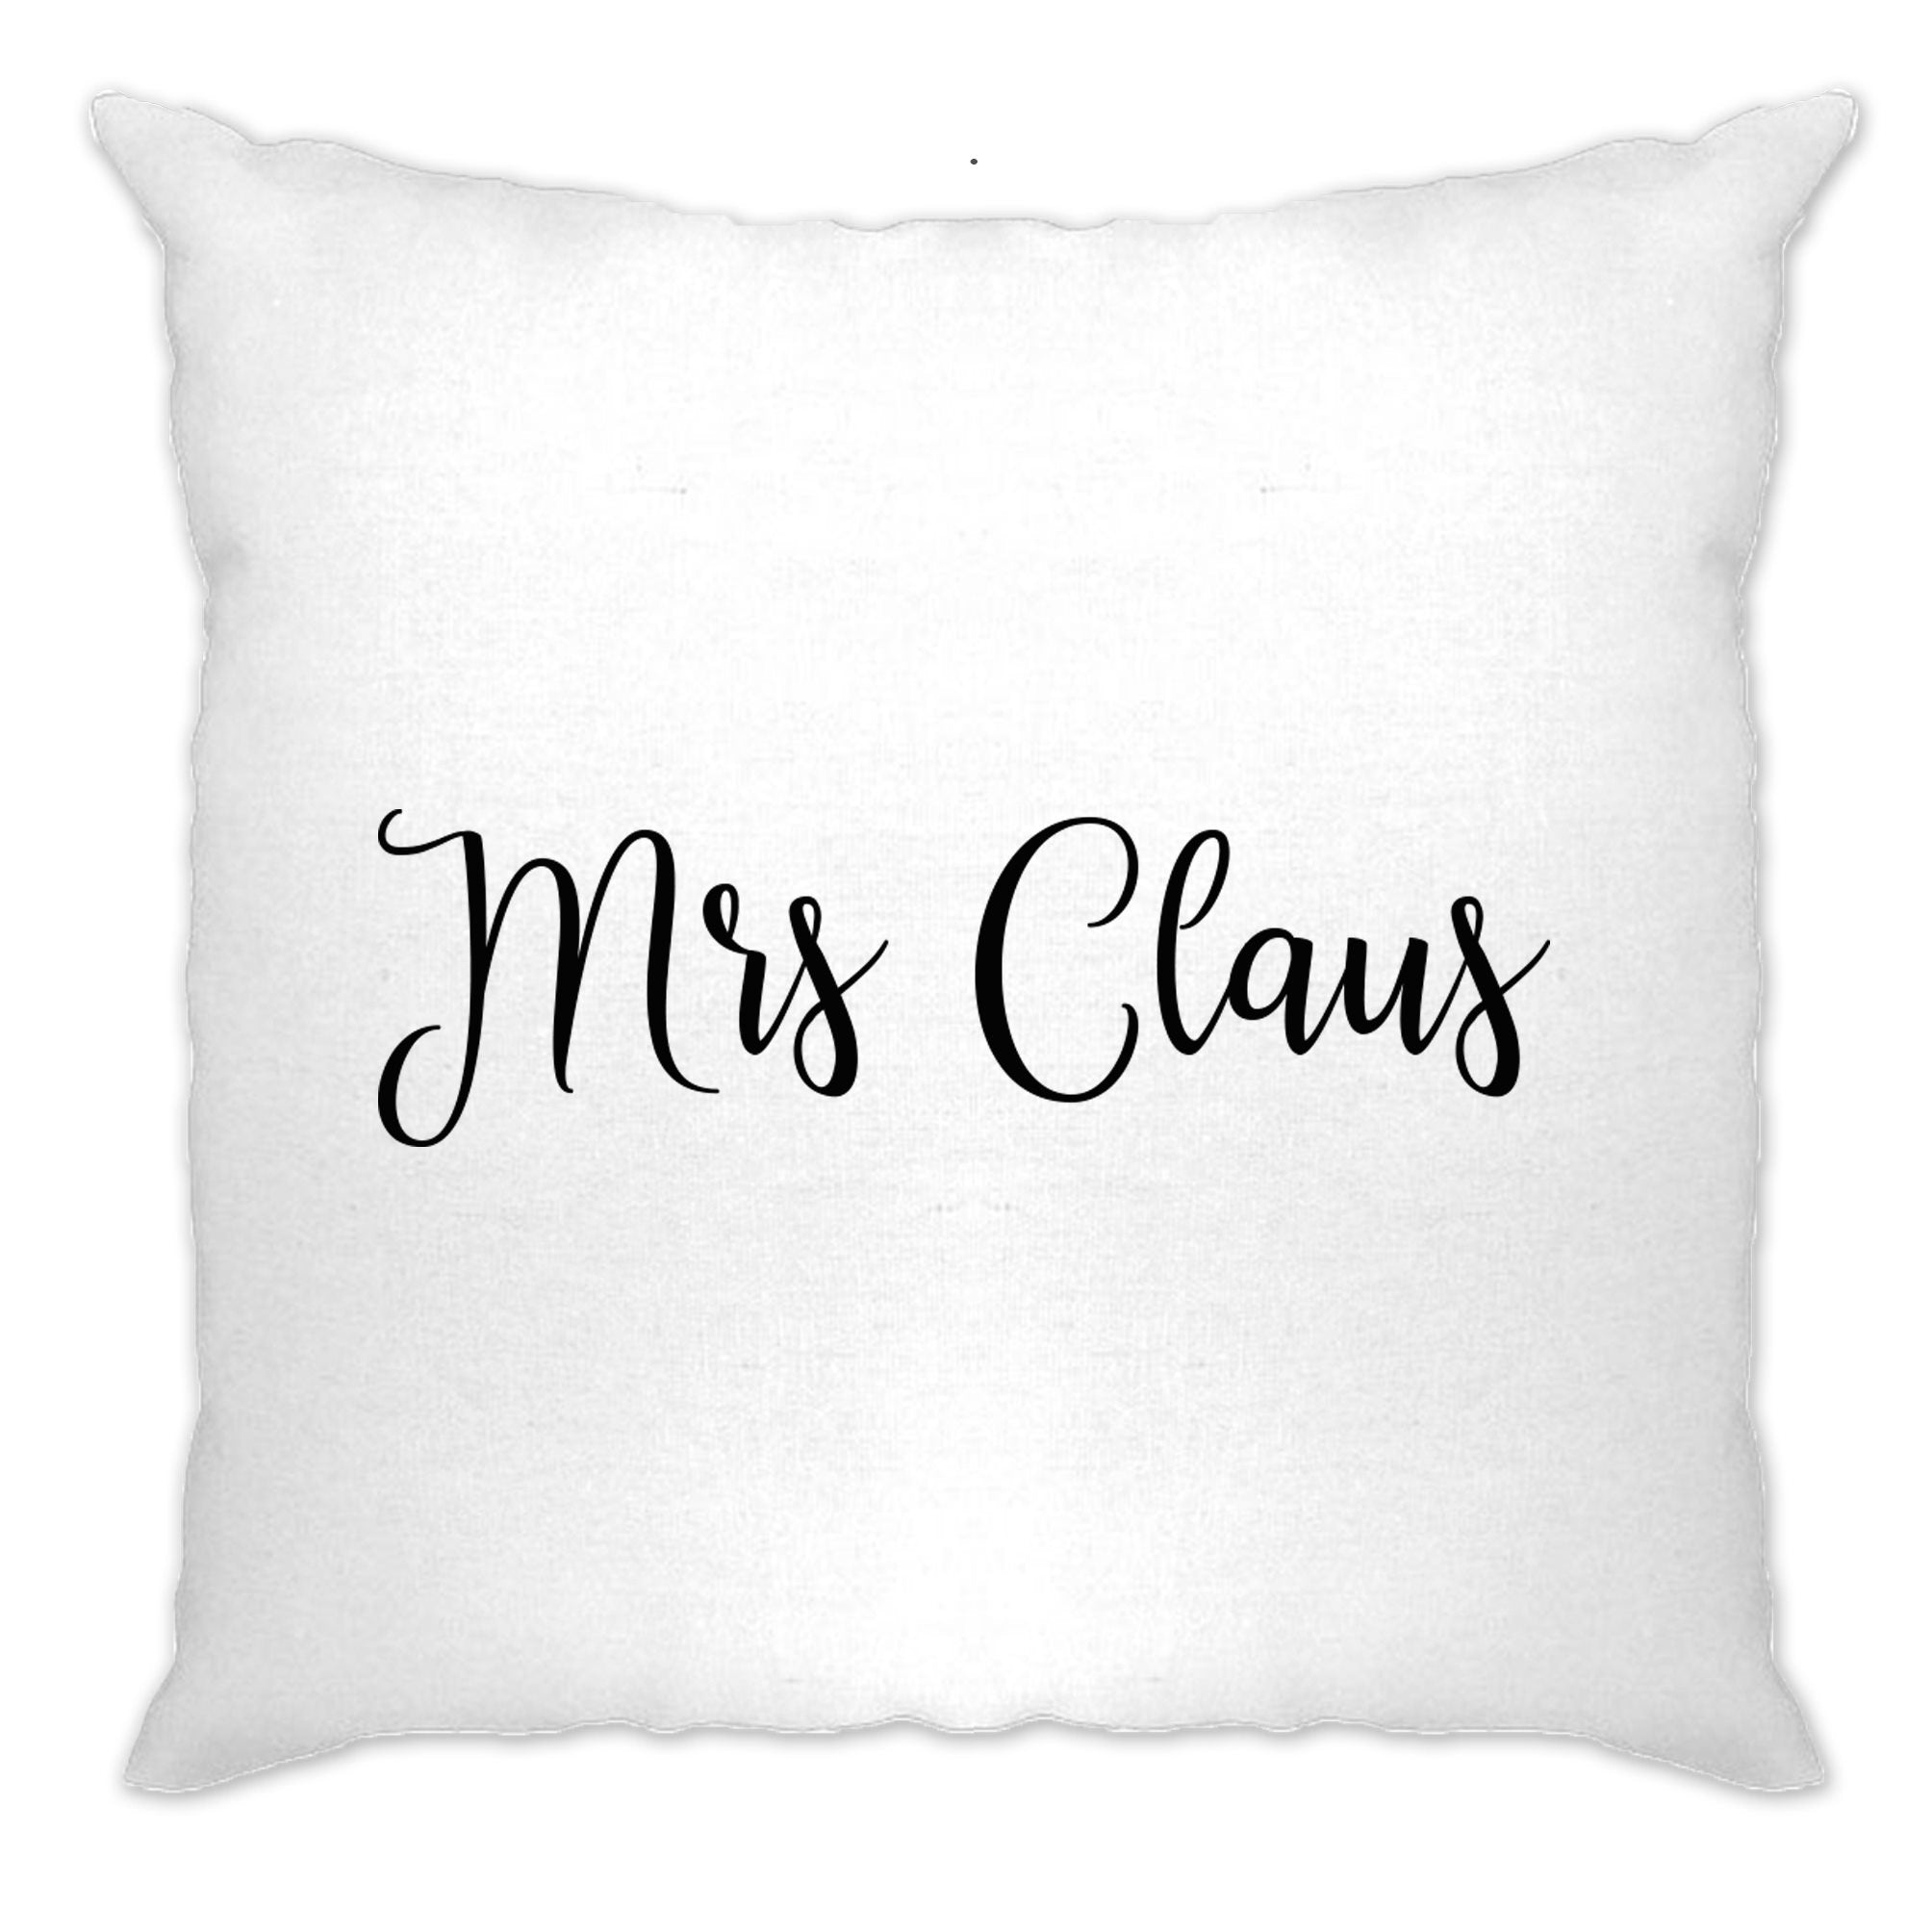 Novelty Christmas Cushion Cover Mrs Claus Slogan